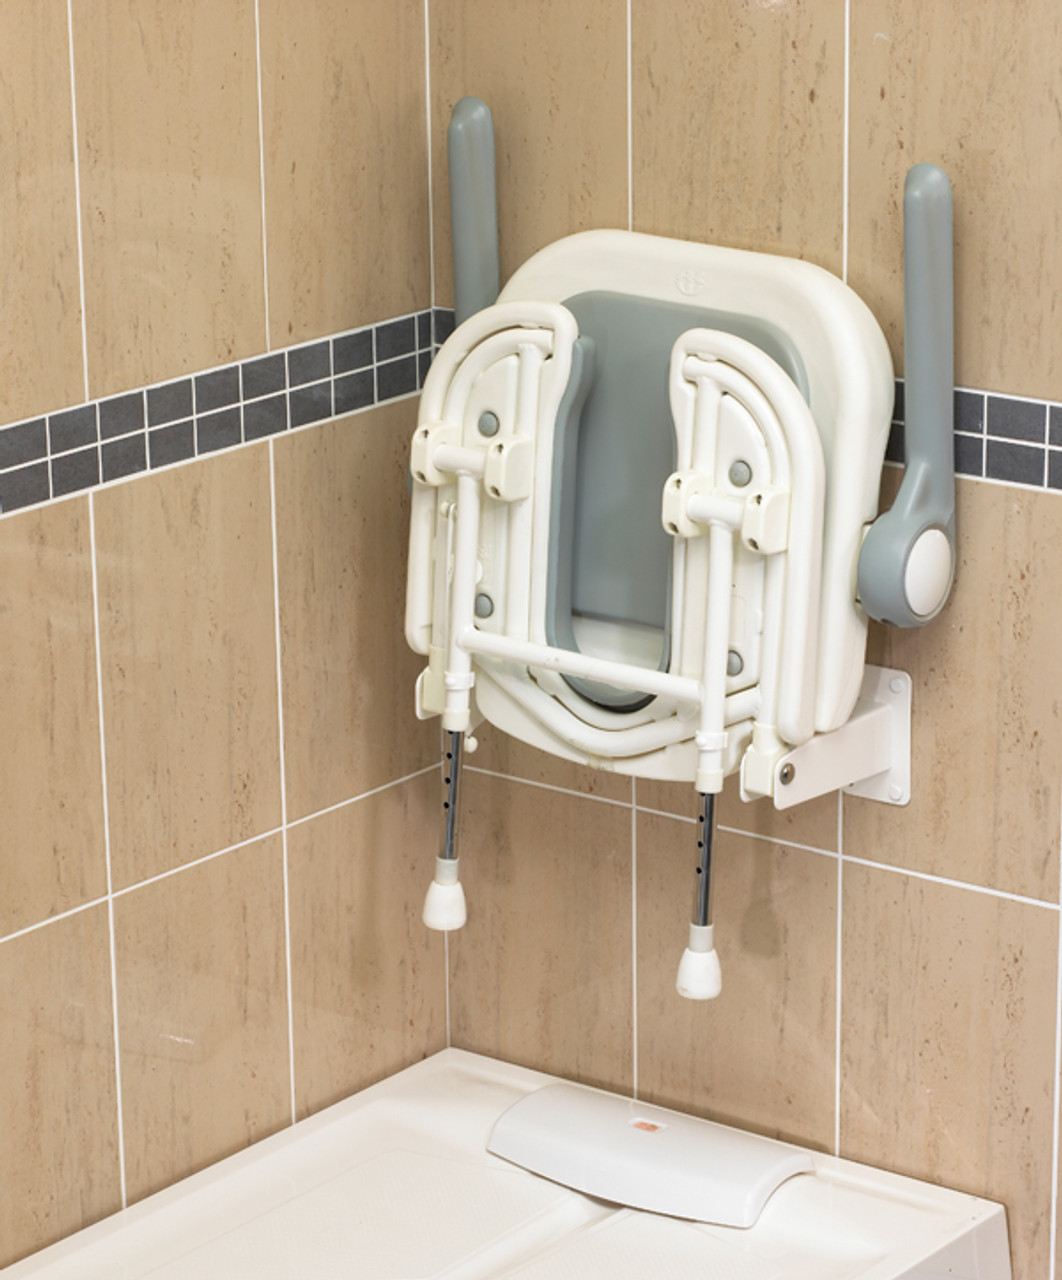 Bariatric wall mount shower seat with hygiene cut out for Bathroom accessories for elderly in india